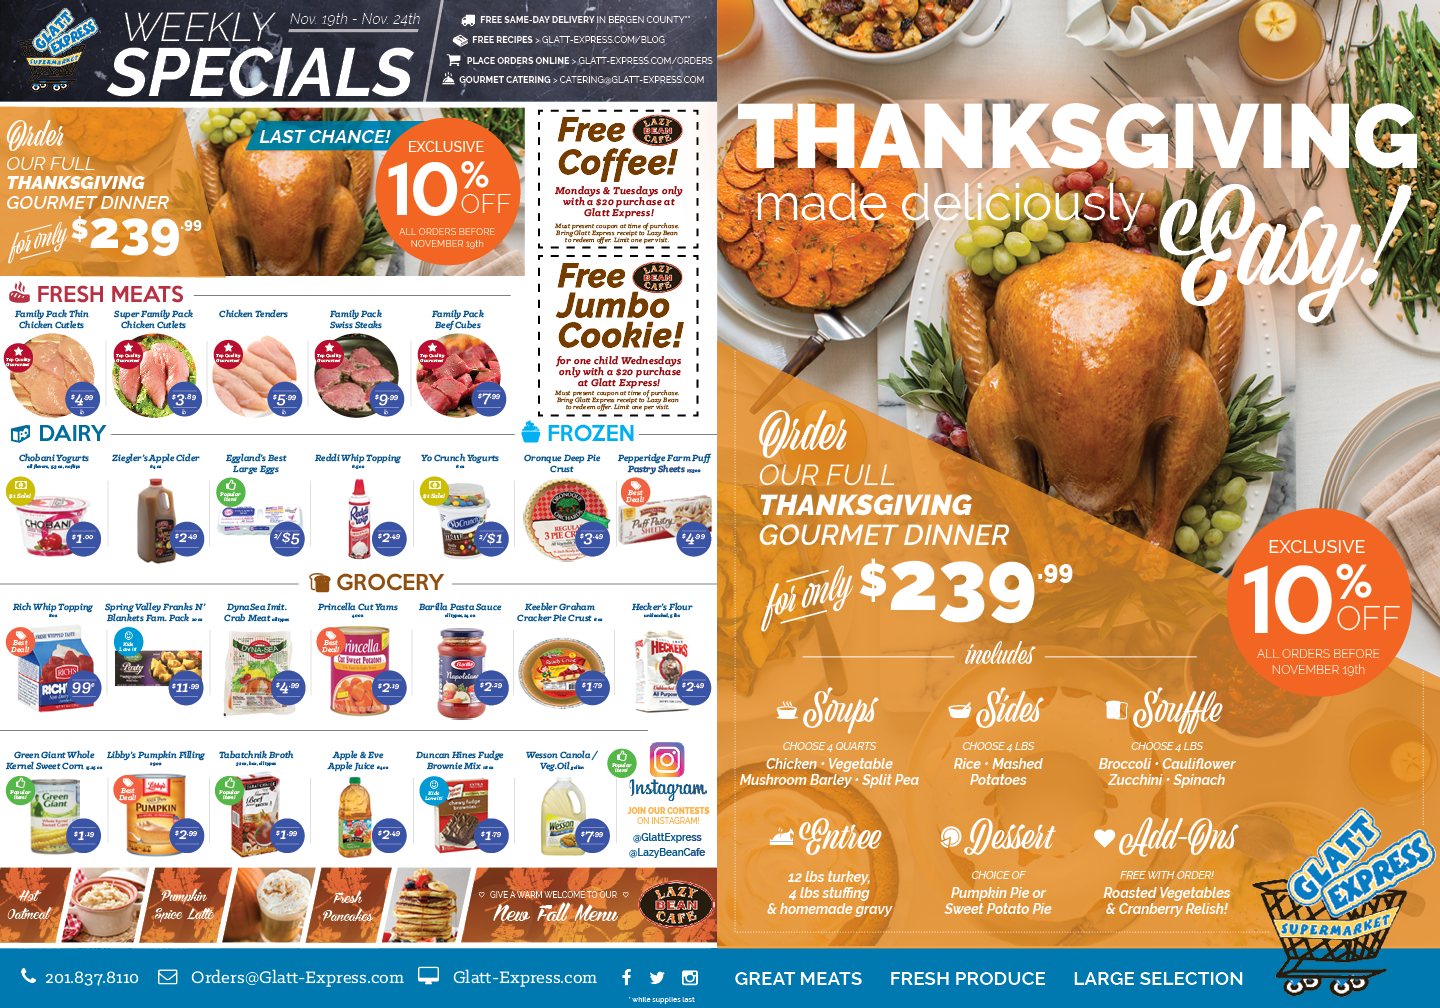 Whole Foods Thanksgiving Catering Menu